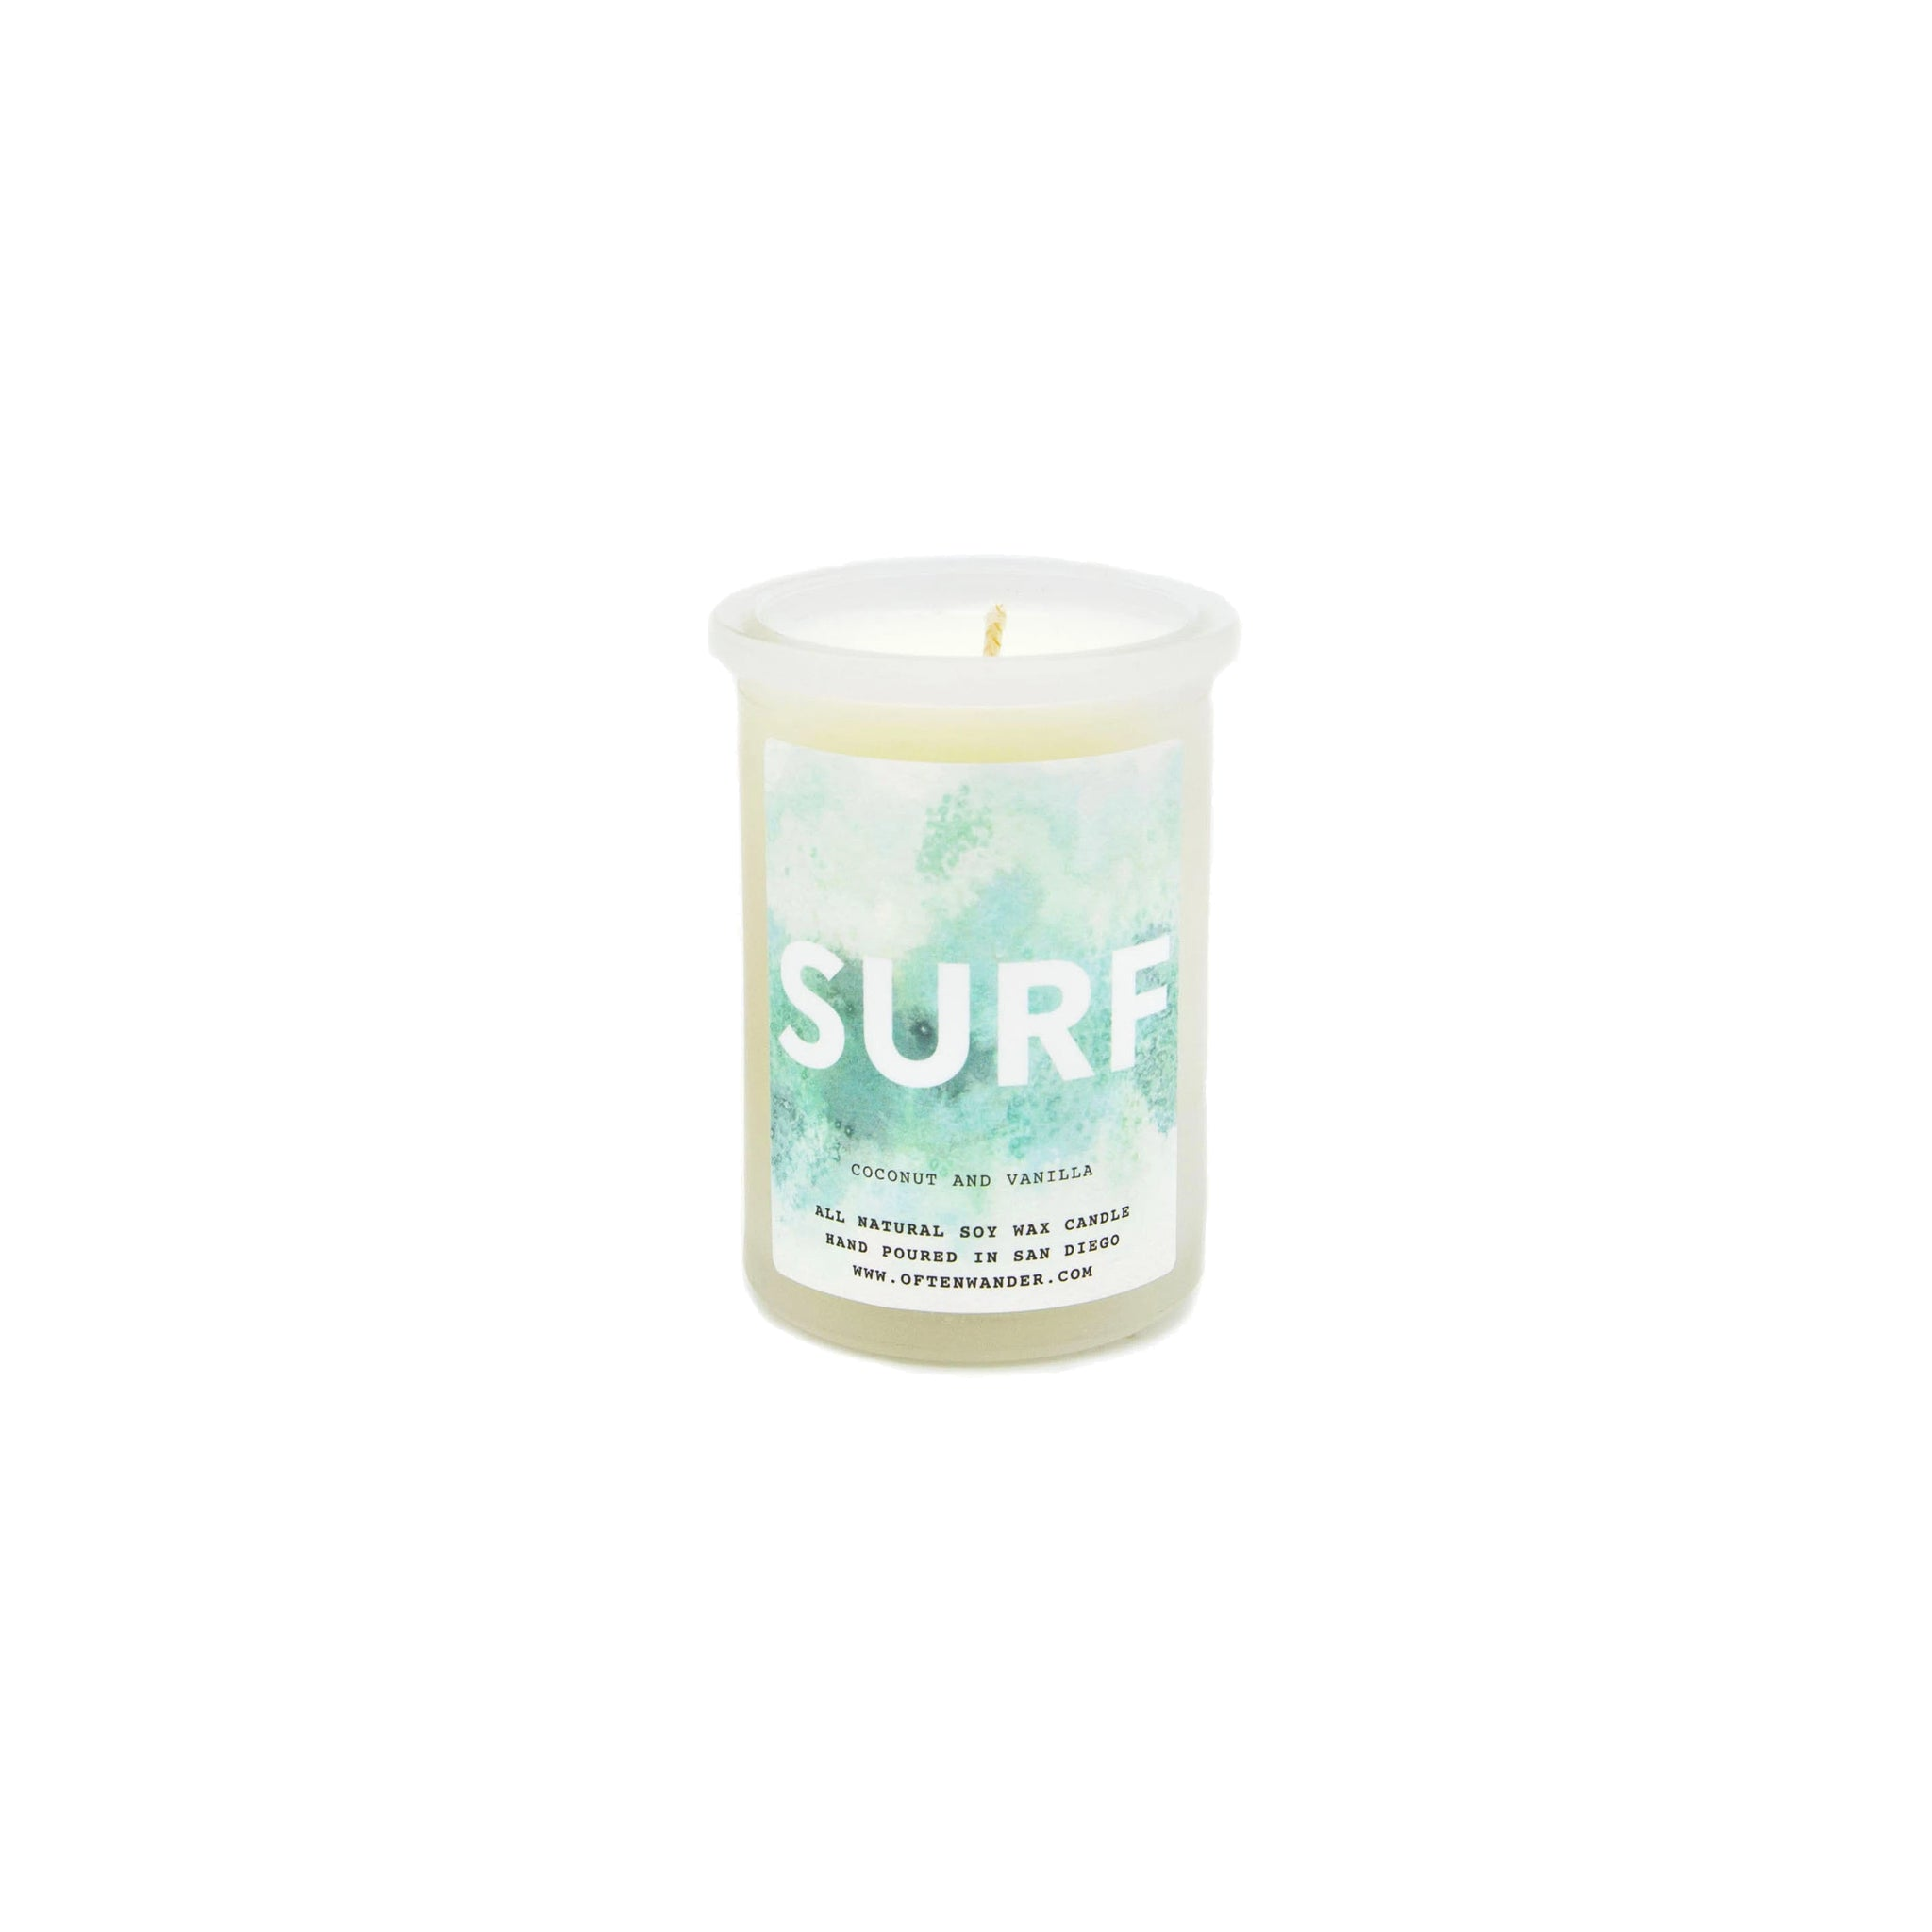 SURF CANDLE 6OZ